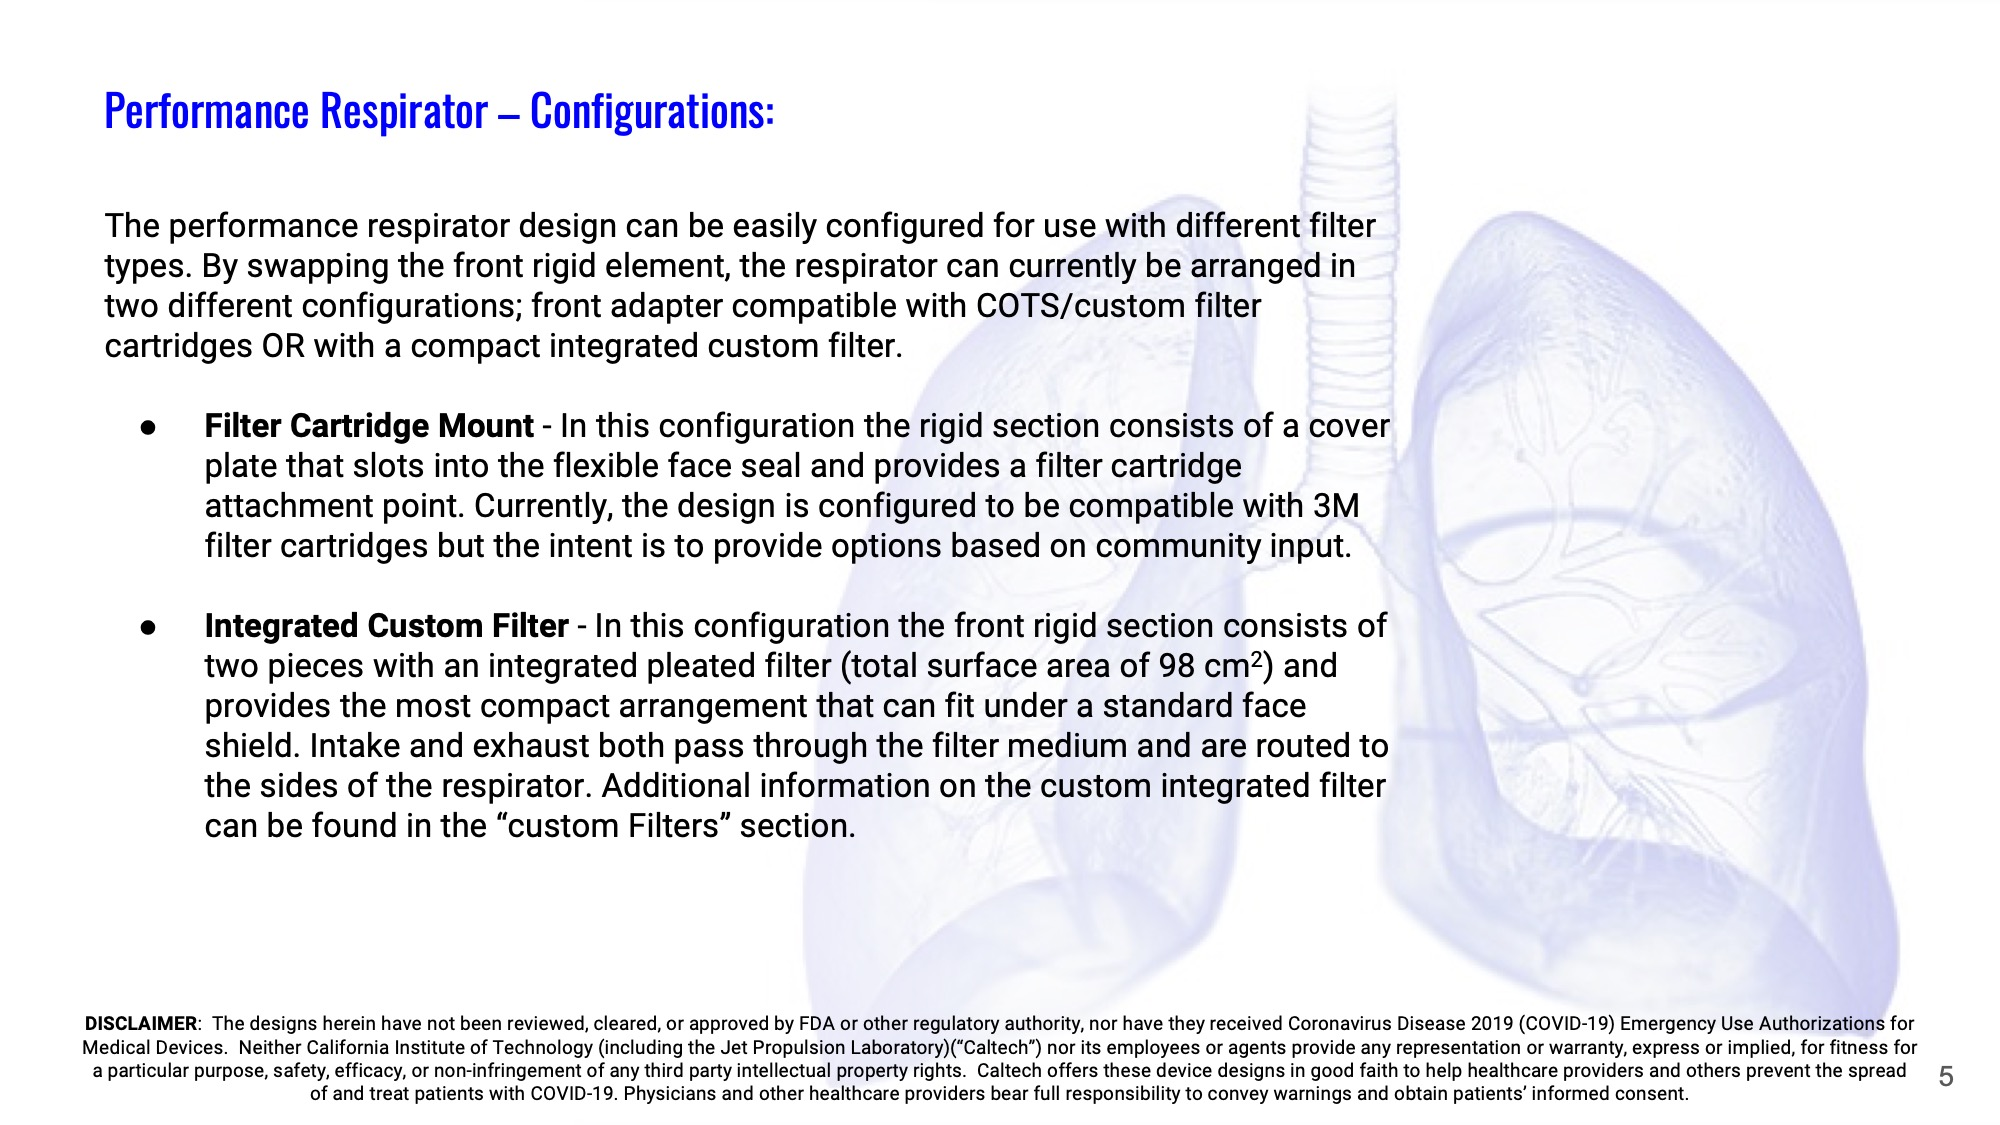 "Slide 5: Performance Respirator – Configurations: The performance respirator design can be easily configured for use with different filter types. By swapping the front rigid element, the respirator can currently be arranged in two different configurations; front adapter compatible with COTS/custom filter cartridges OR with a compact integrated custom filter.  Filter Cartridge Mount - In this configuration the rigid section consists of a cover plate that slots into the flexible face seal and provides a filter cartridge attachment point. Currently, the design is configured to be compatible with 3M filter cartridges but the intent is to provide options based on community input.  Integrated Custom Filter - In this configuration the front rigid section consists of two pieces with an integrated pleated filter (total surface area of 98 cm2) and provides the most compact arrangement that can fit under a standard face shield. Intake and exhaust both pass through the filter medium and are routed to the sides of the respirator. Additional information on the custom integrated filter can be found in the ""custom Filters"" section."